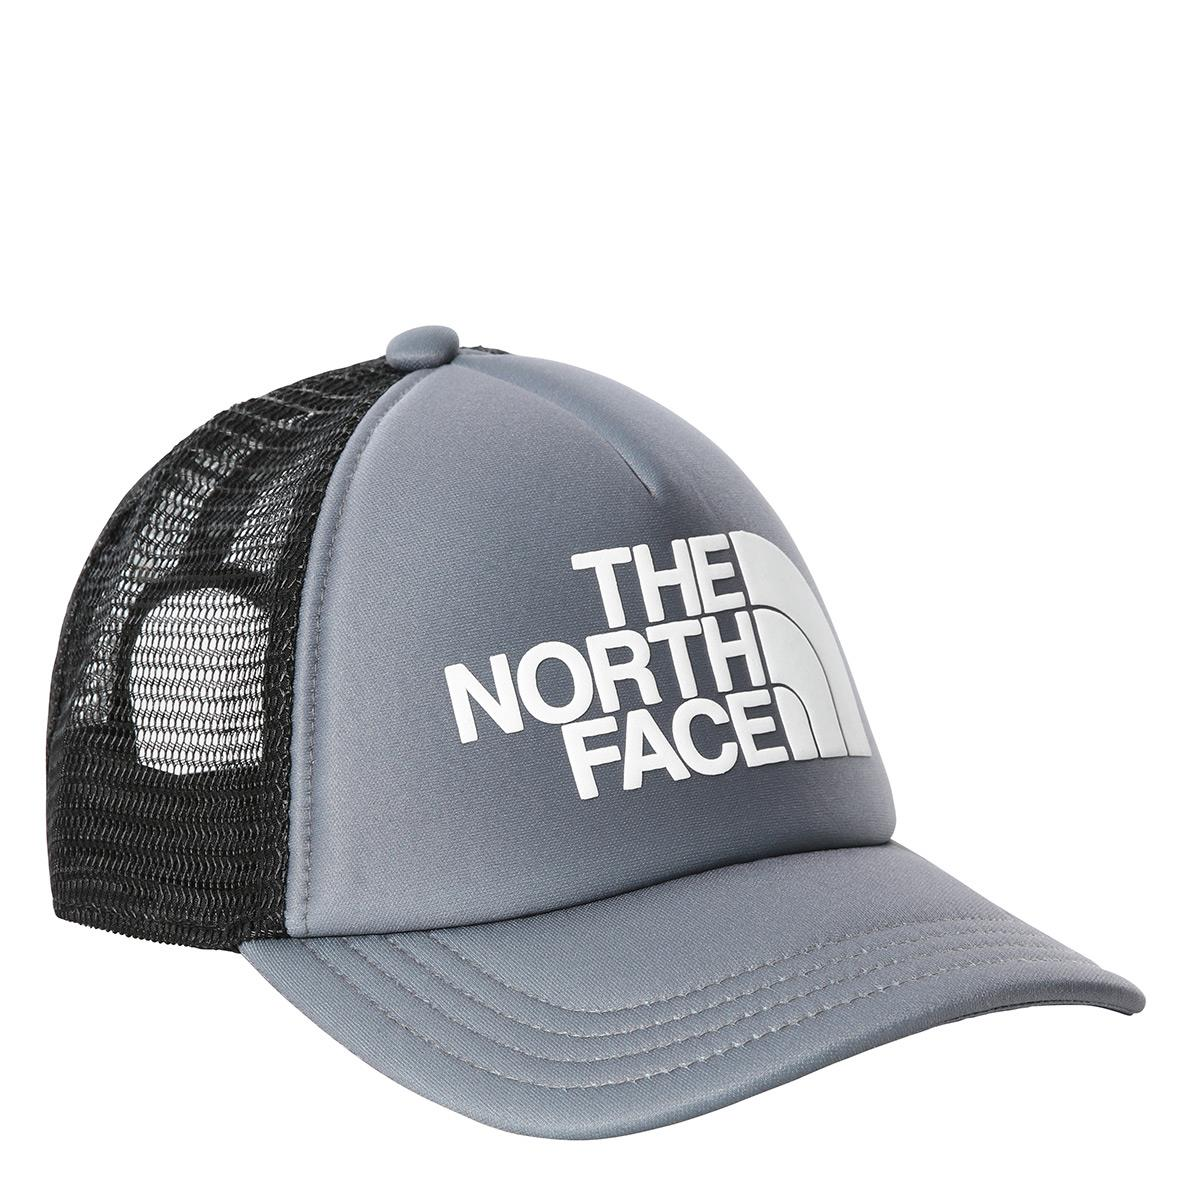 The North Face  EU Çocuk   LOGO TRUCKER Şapka